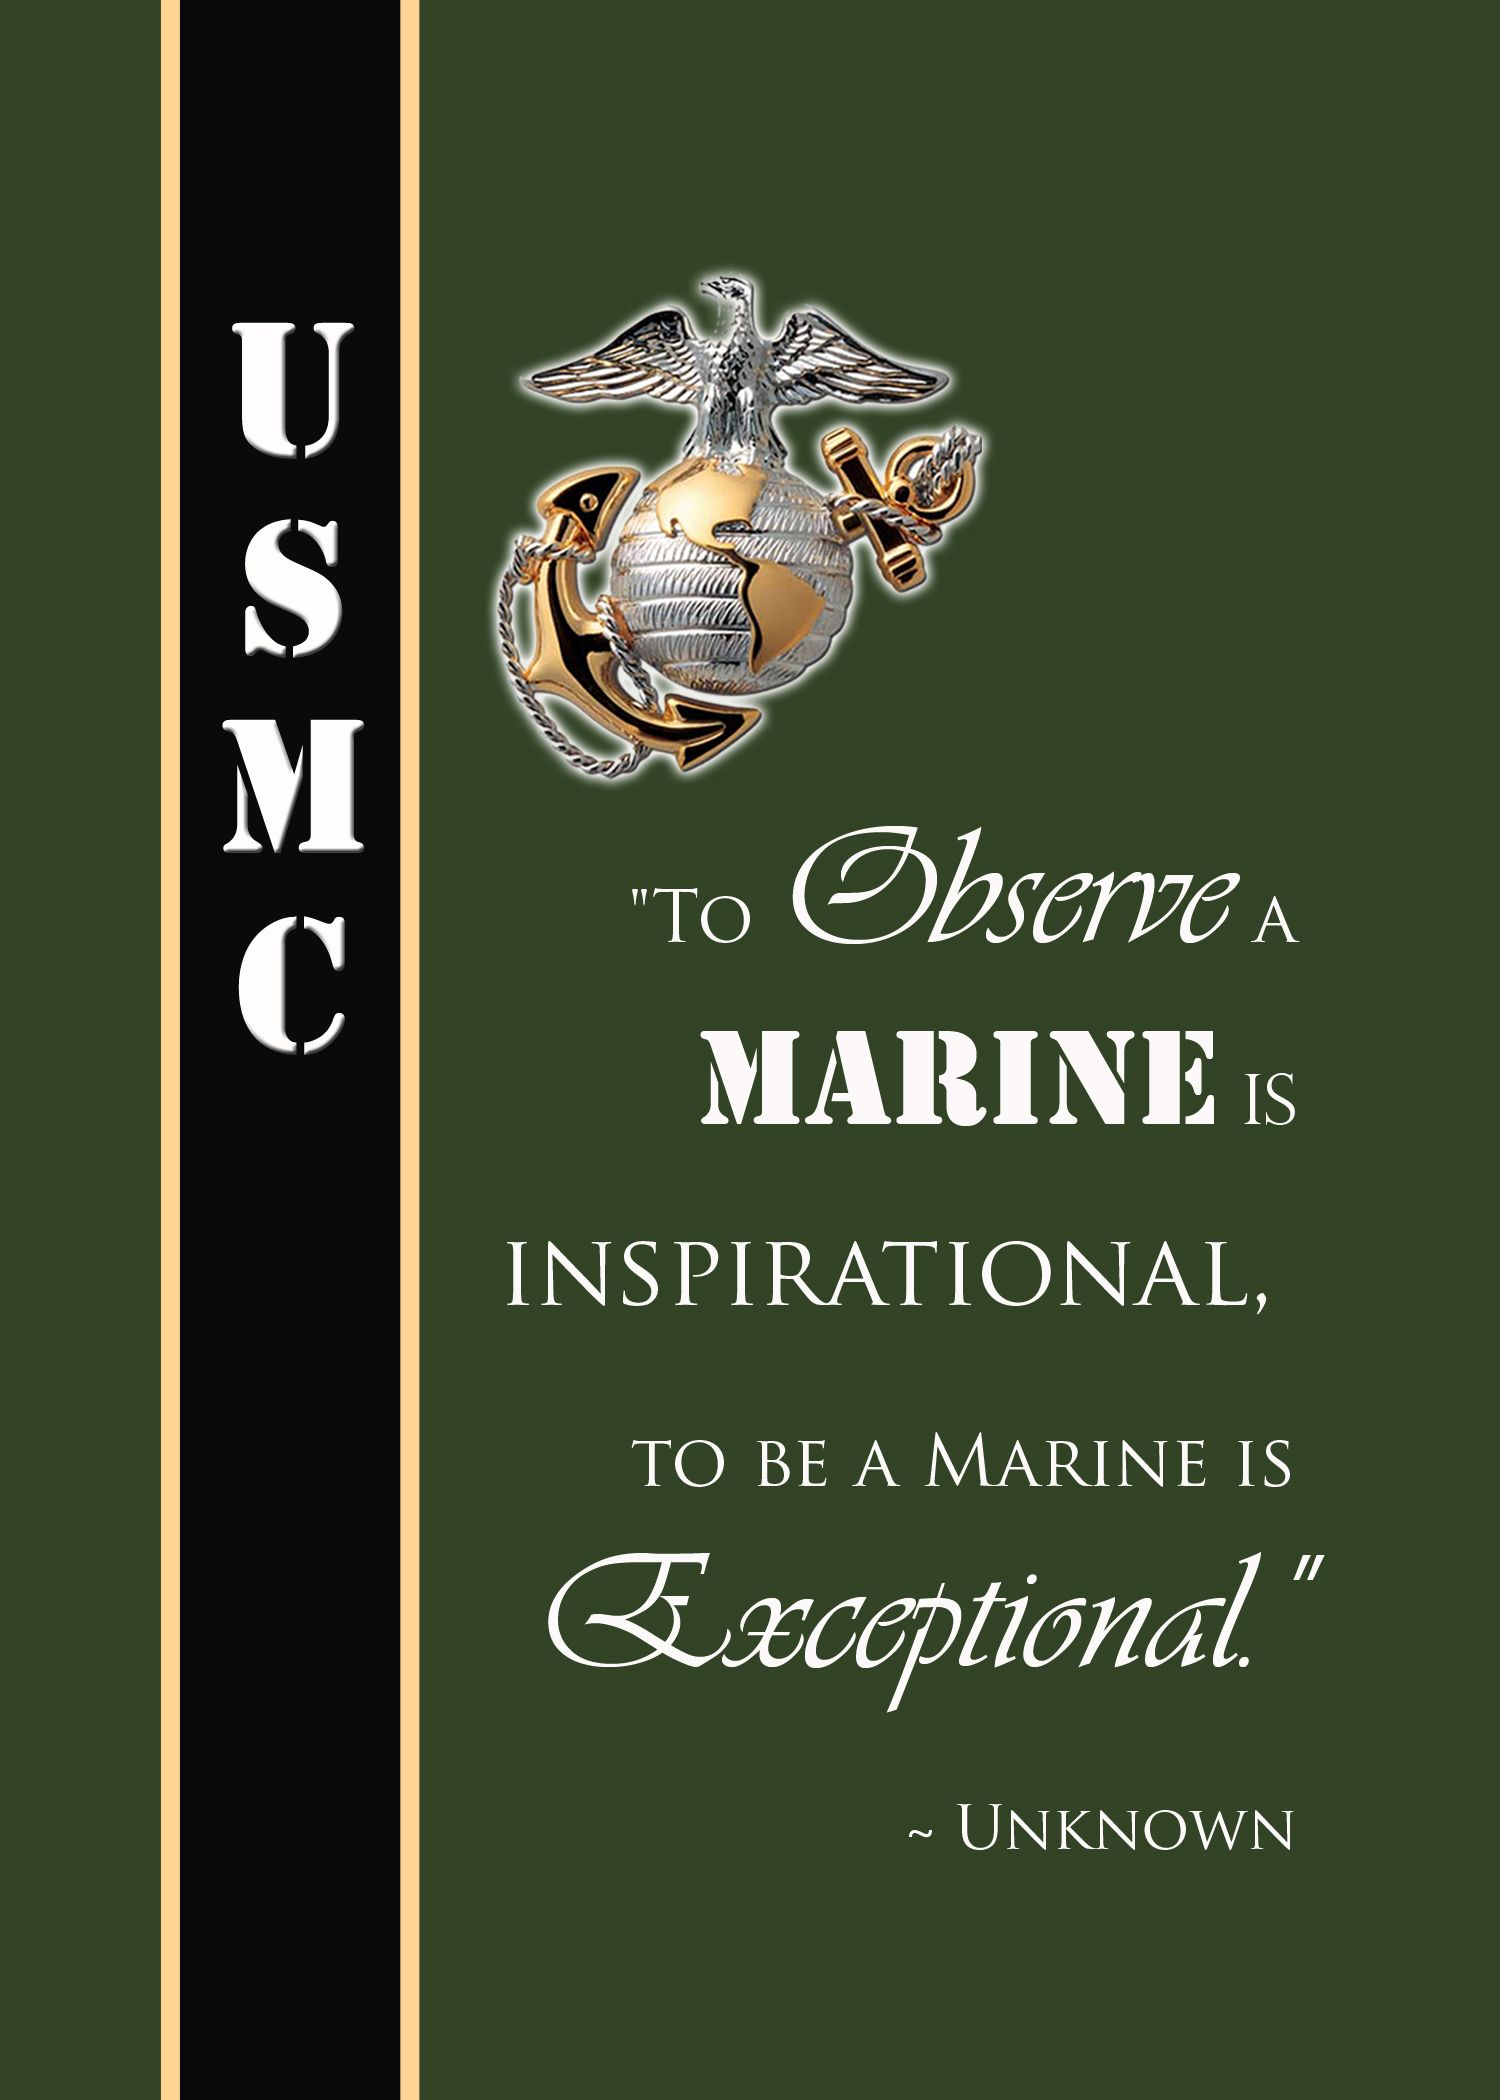 Marines Quotes Prepossessing Famous Marine Quoteto Observe A Marine Is Inspirational To Be A . Design Inspiration